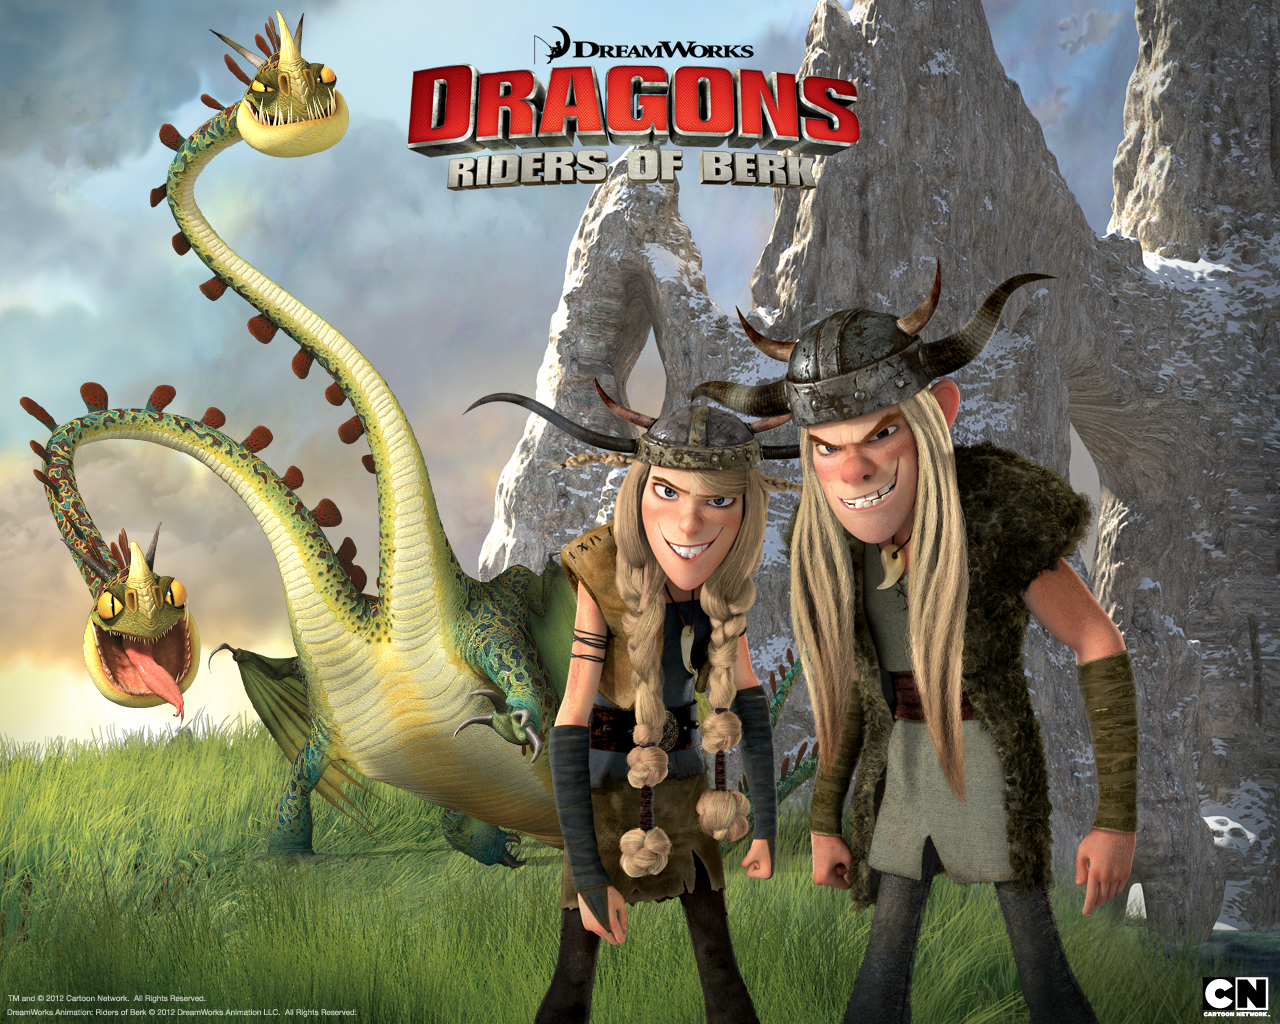 "' Dragons: Riders of Berk"" on the Cartoon Network at 7:30/6:30 C"